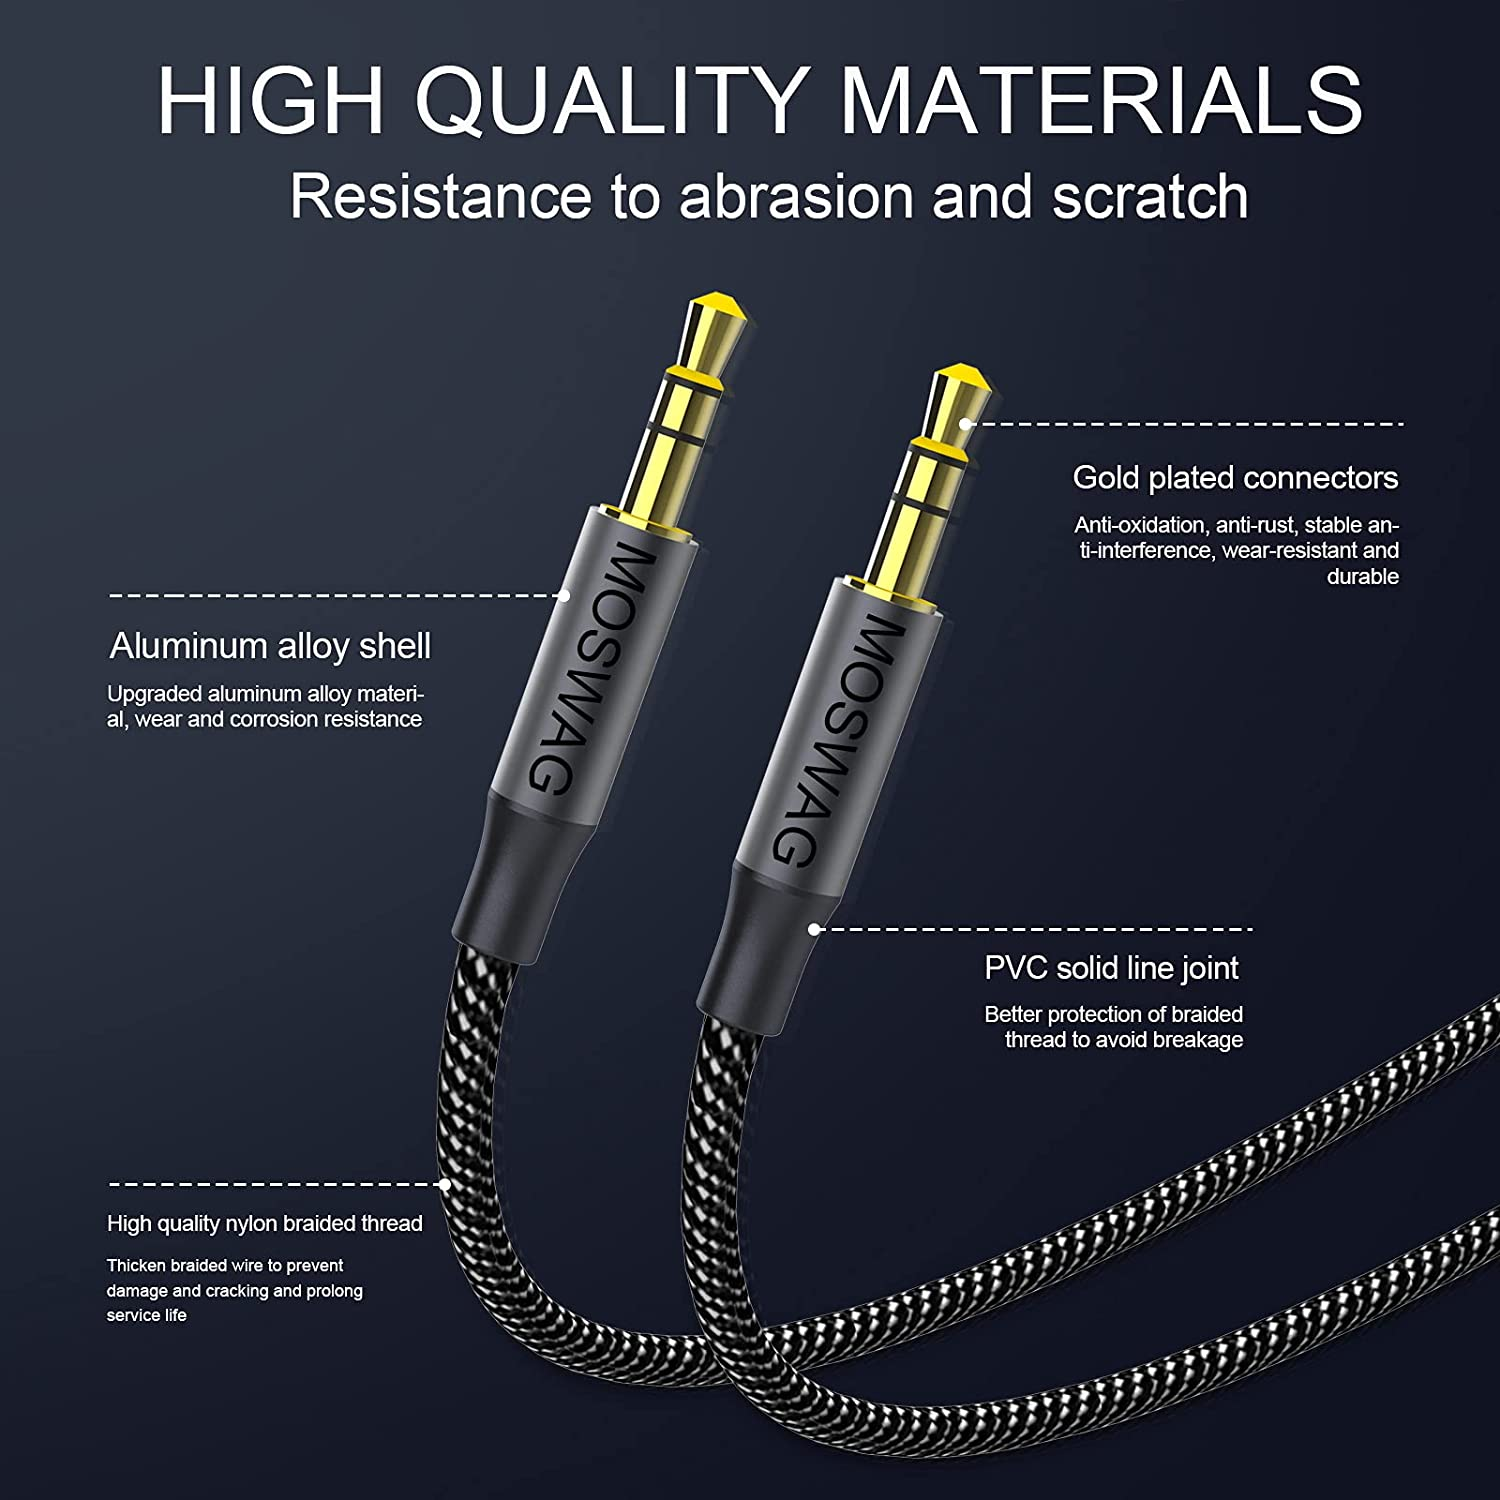 MOSWAG 3.5mm Aux Cord to 3.5mm Audio Aux Jack Cable Male to Male Aux Cable Nylon Braided Stereo Jack Cord for Phones,Headphones,Speakers,Tablets,PCs,Music Players and More (1.64FT/0.5M, Black)